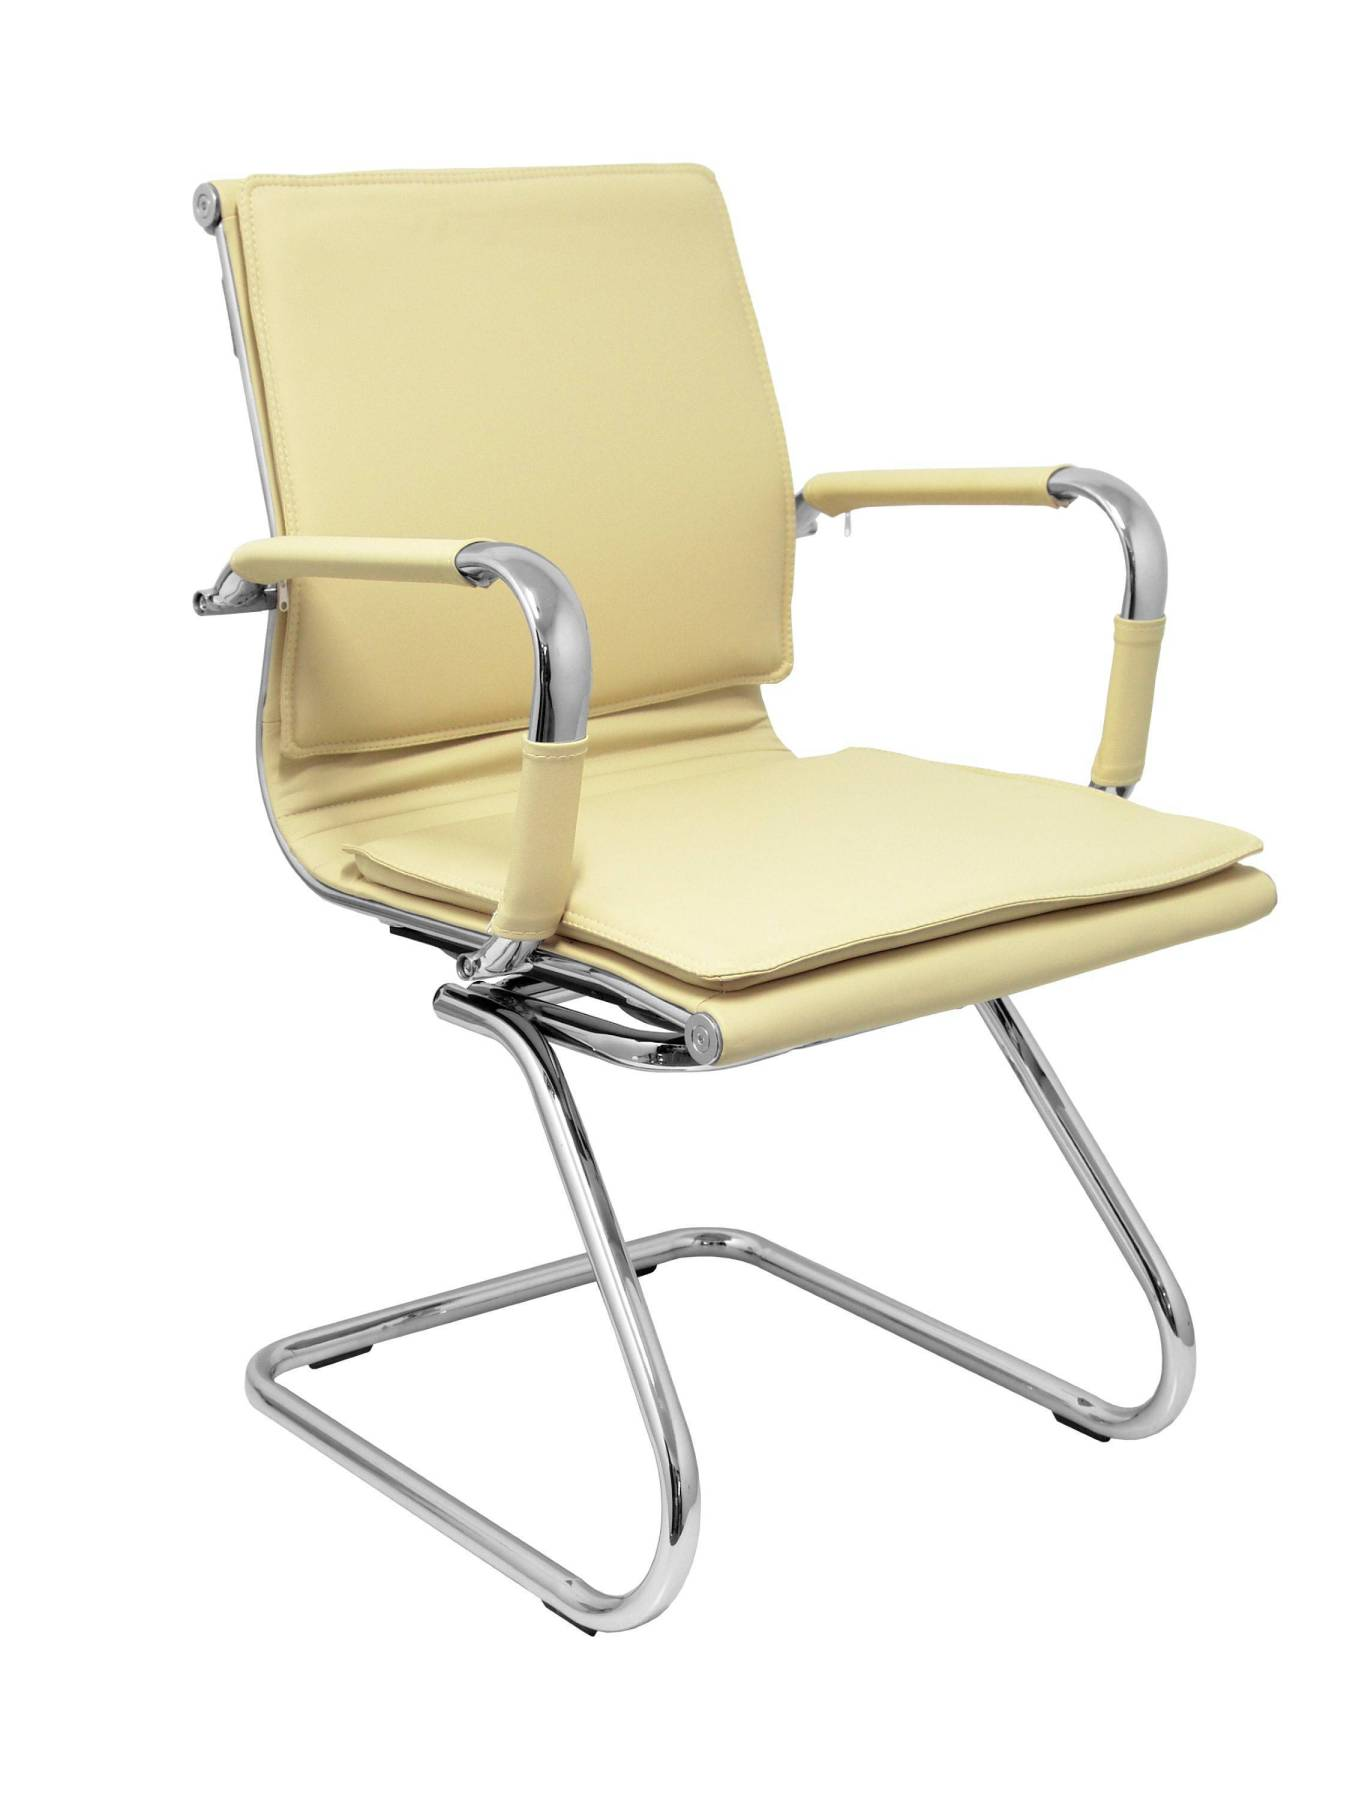 Office's Armchair Ergonomic Confidante/waiting With Skate Chrome-up Seat And Backstop Upholstered In Similpiel Color Ne